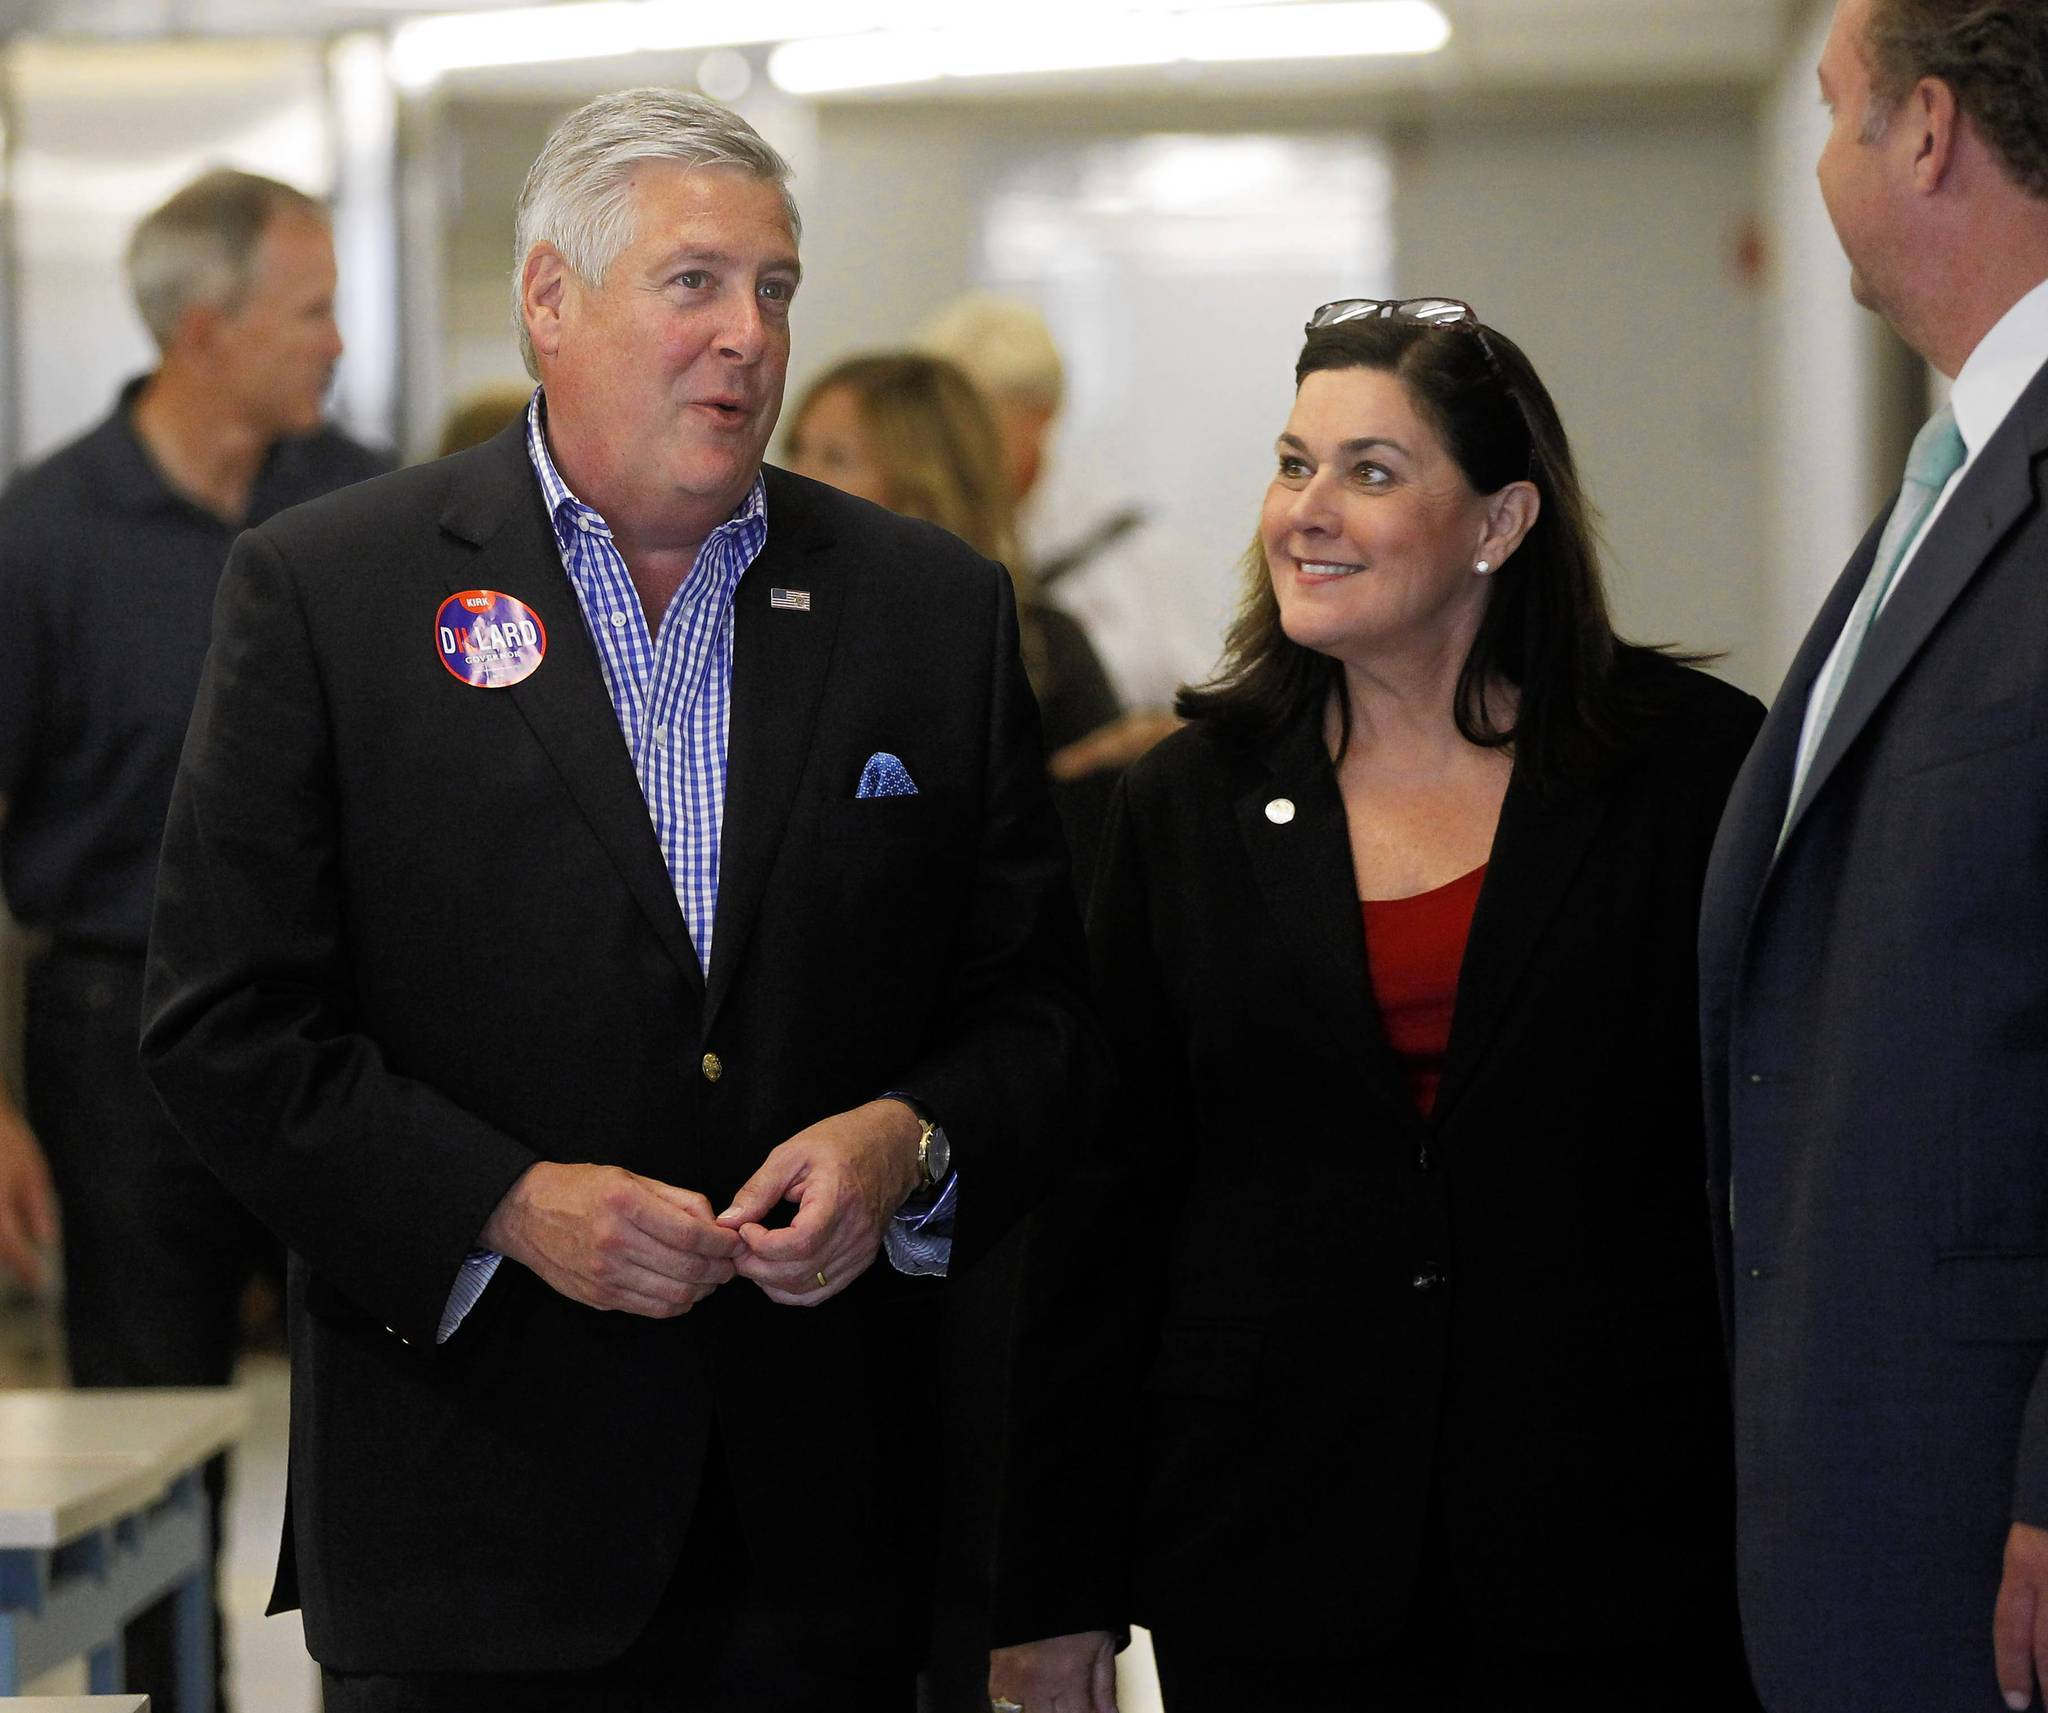 Republican candidate for governor Kirk Dillard and his running mate, Jil Tracy.